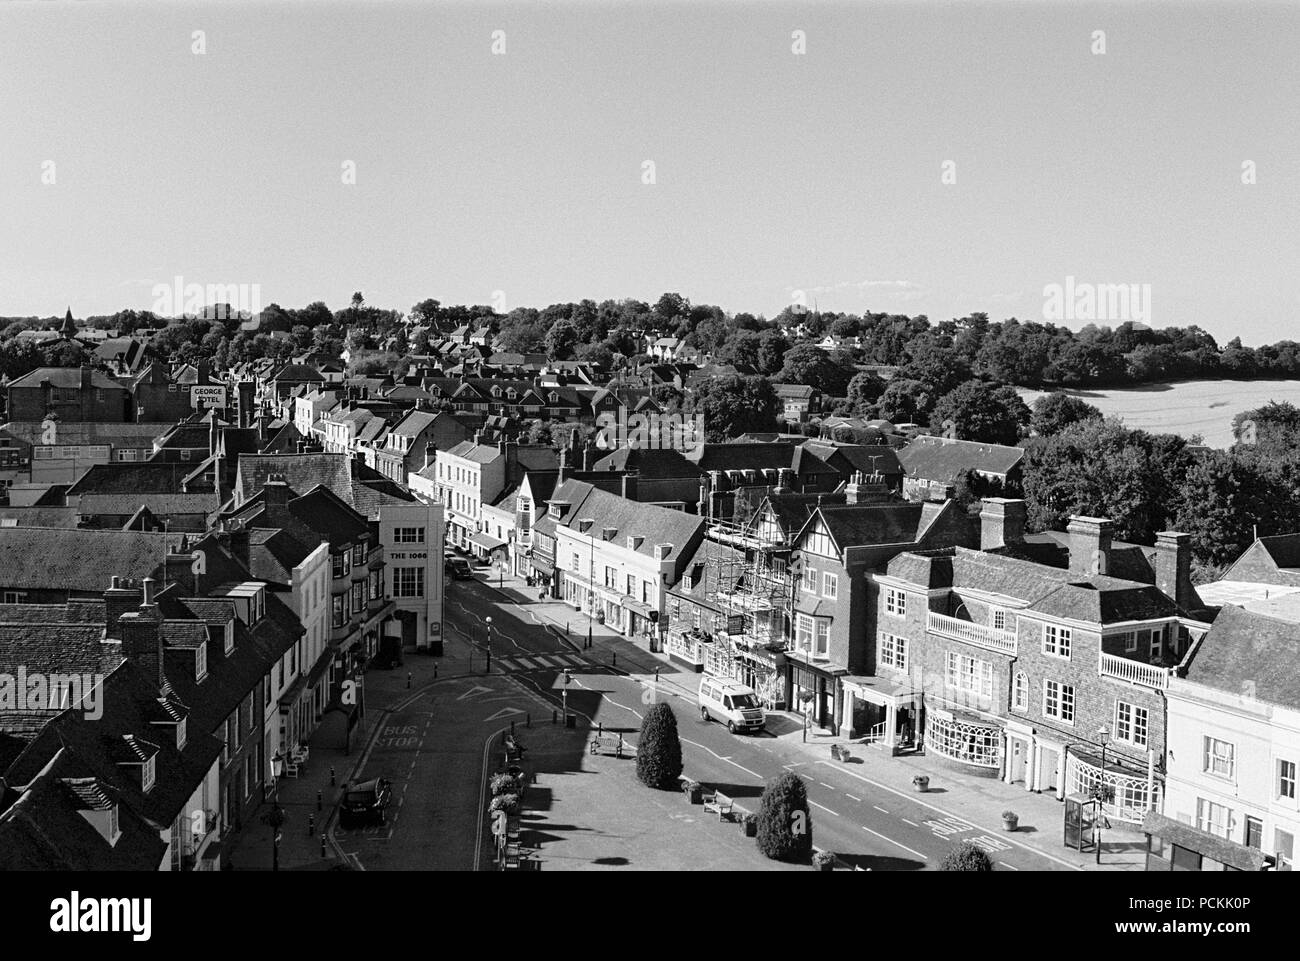 The Abbey Green and High Street at Battle, East Sussex, UK, viewed from the top of Battle Abbey gatehouse - Stock Image